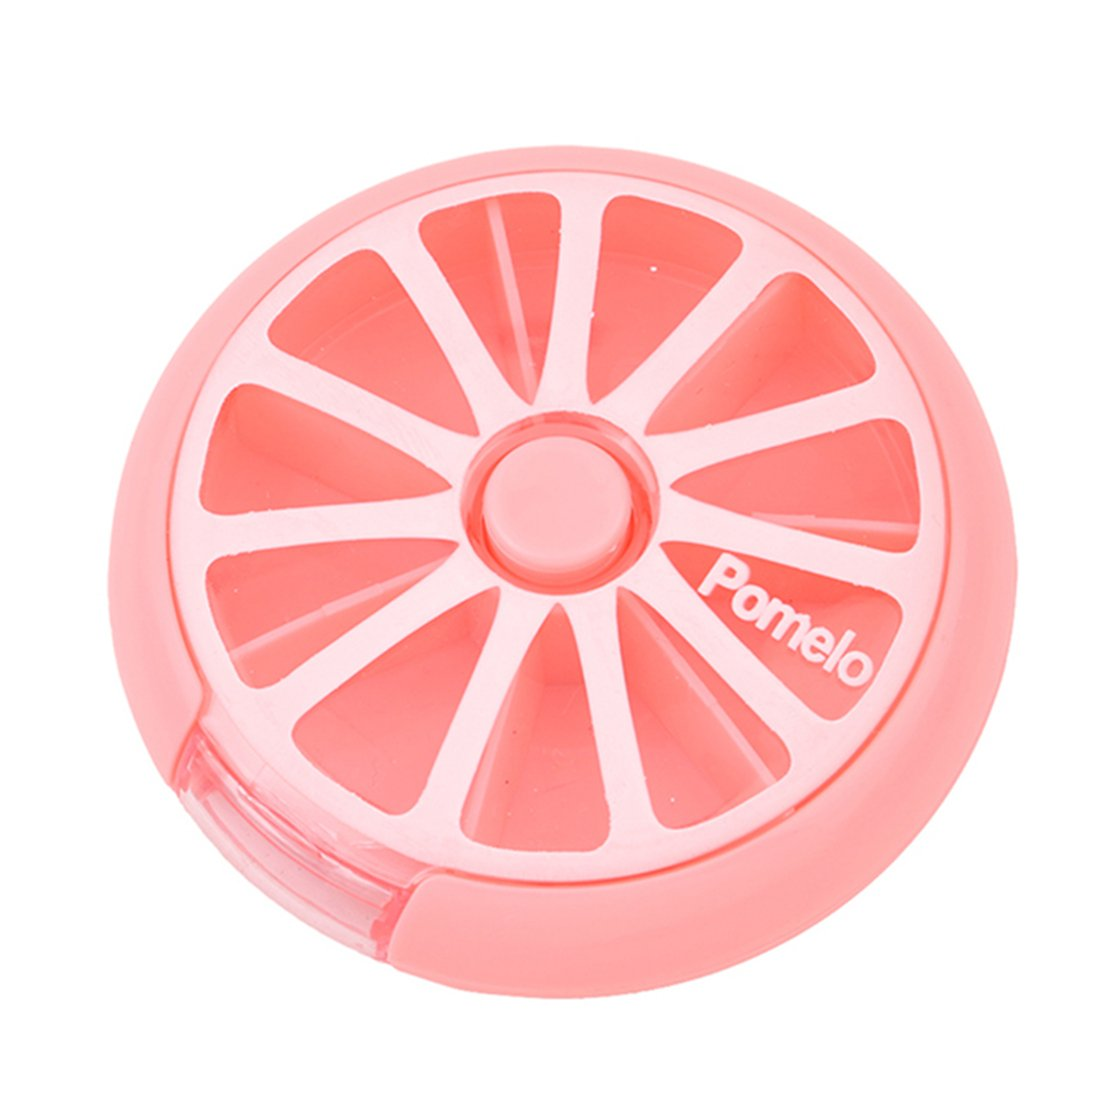 ULAKY Cute Mini Portable Rotary Weekly Pillbox Medicine Box Pill Dispenser Holder Vitamin Candy Storage Cases